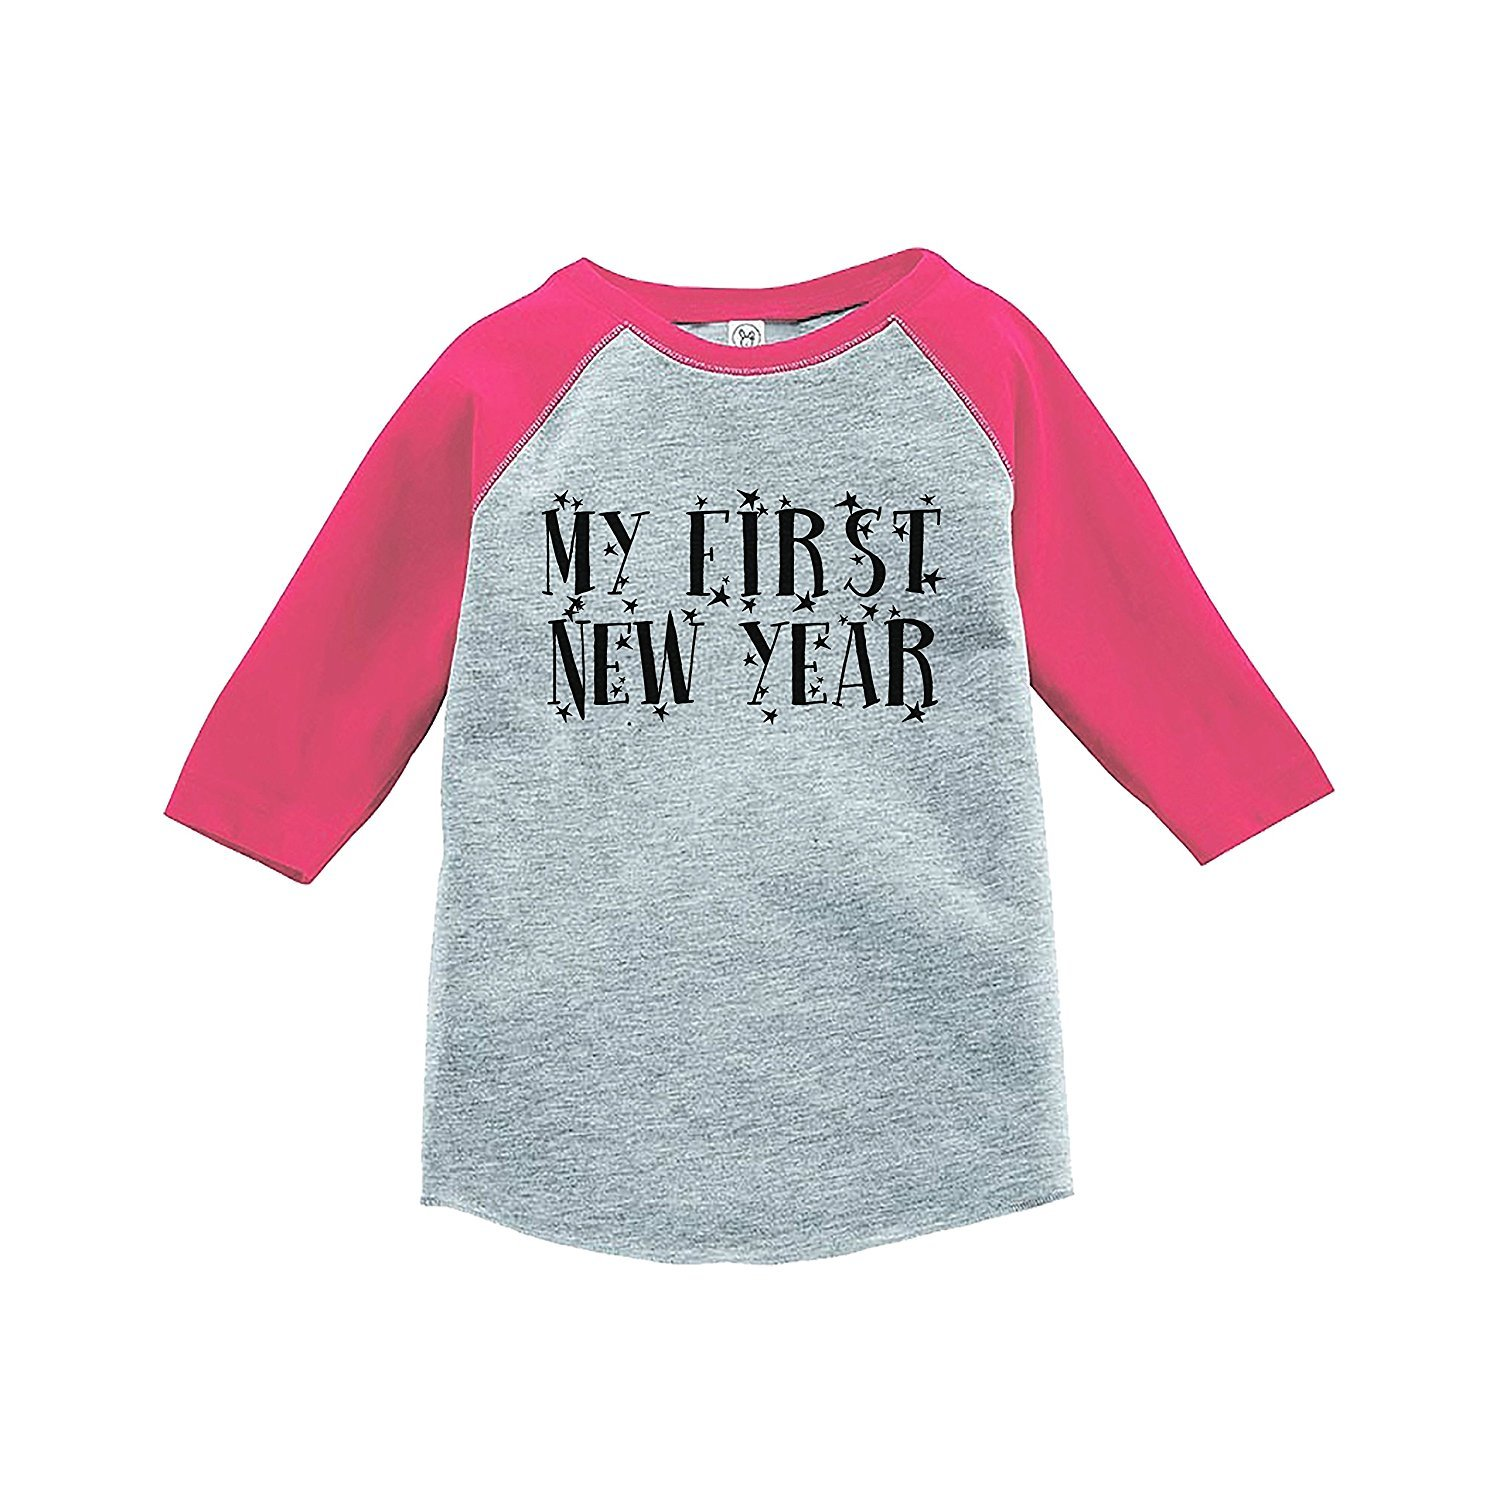 7 ate 9 Apparel Kids First New Year's Eve Pink Baseball Tee - 4T